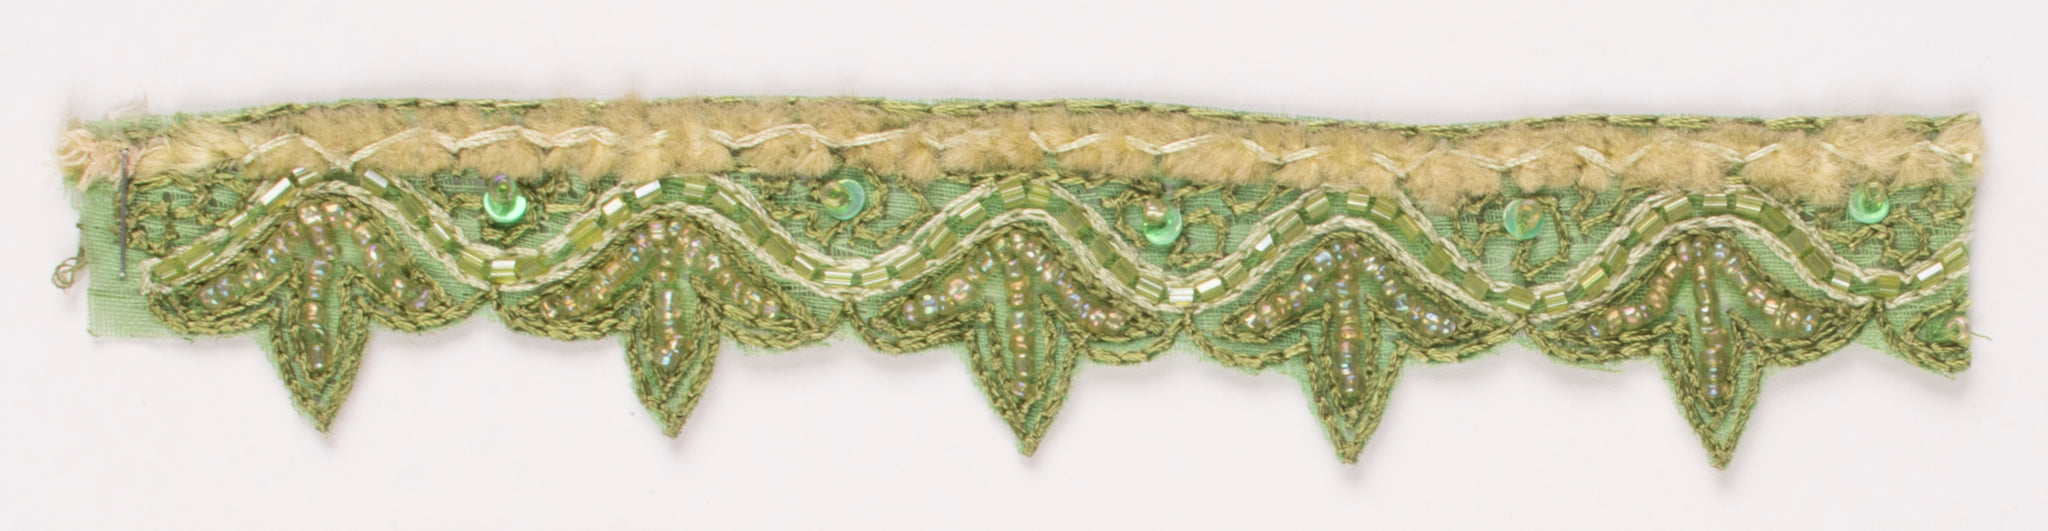 Green Handcrafted Straw Beaded and Sequins Indian Trim - Target Trim